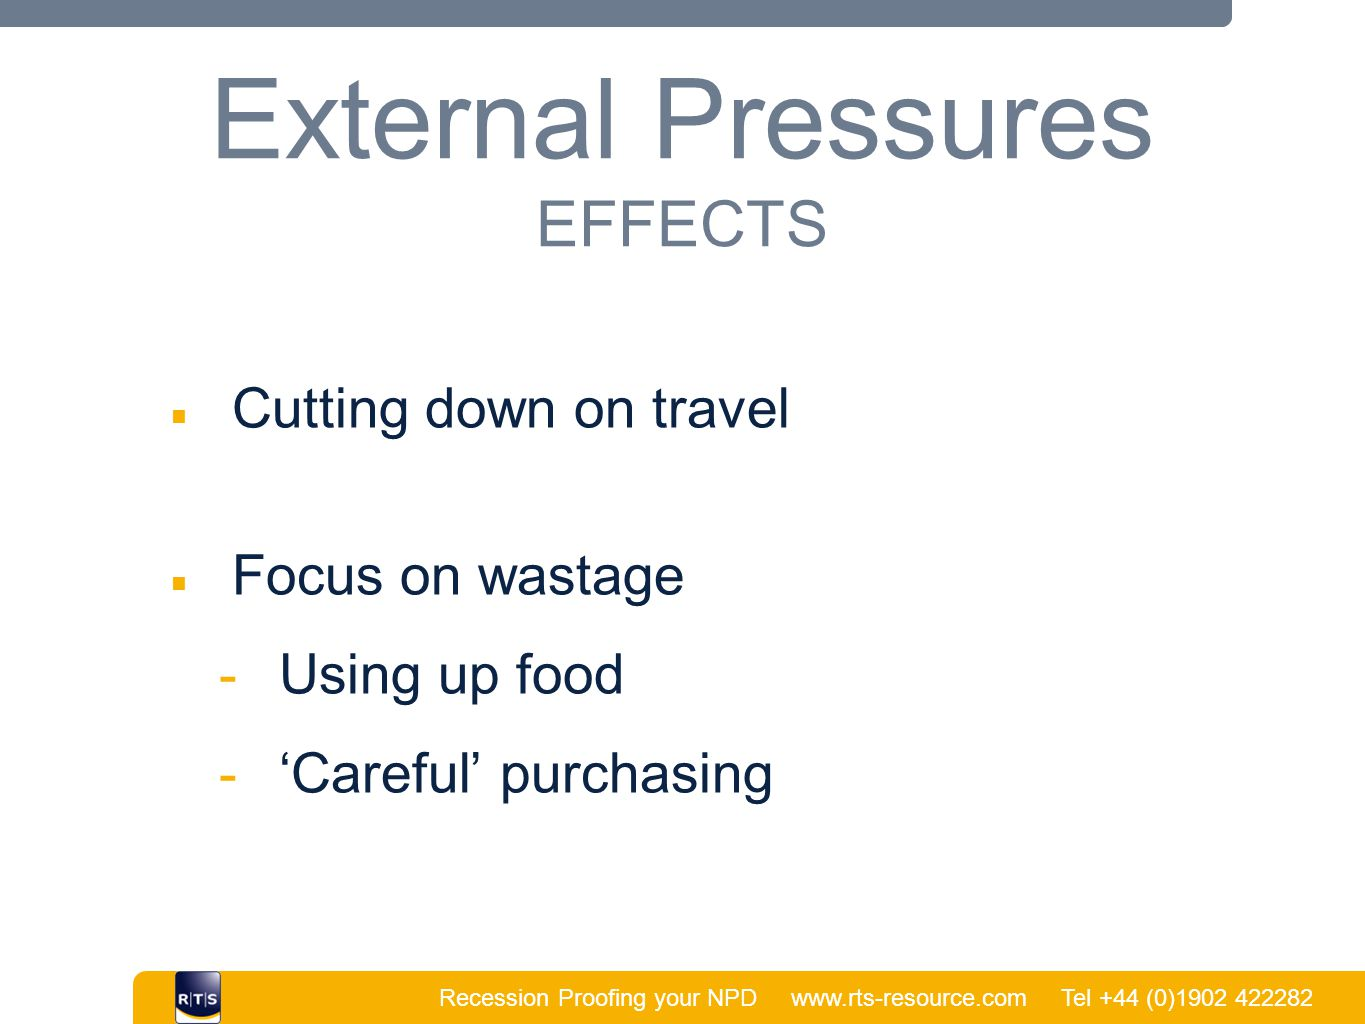 Recession Proofing your NPD www.rts-resource.com Tel +44 (0)1902 422282 | External Pressures EFFECTS ■ Cutting down on travel ■ Focus on wastage  Using up food  'Careful' purchasing